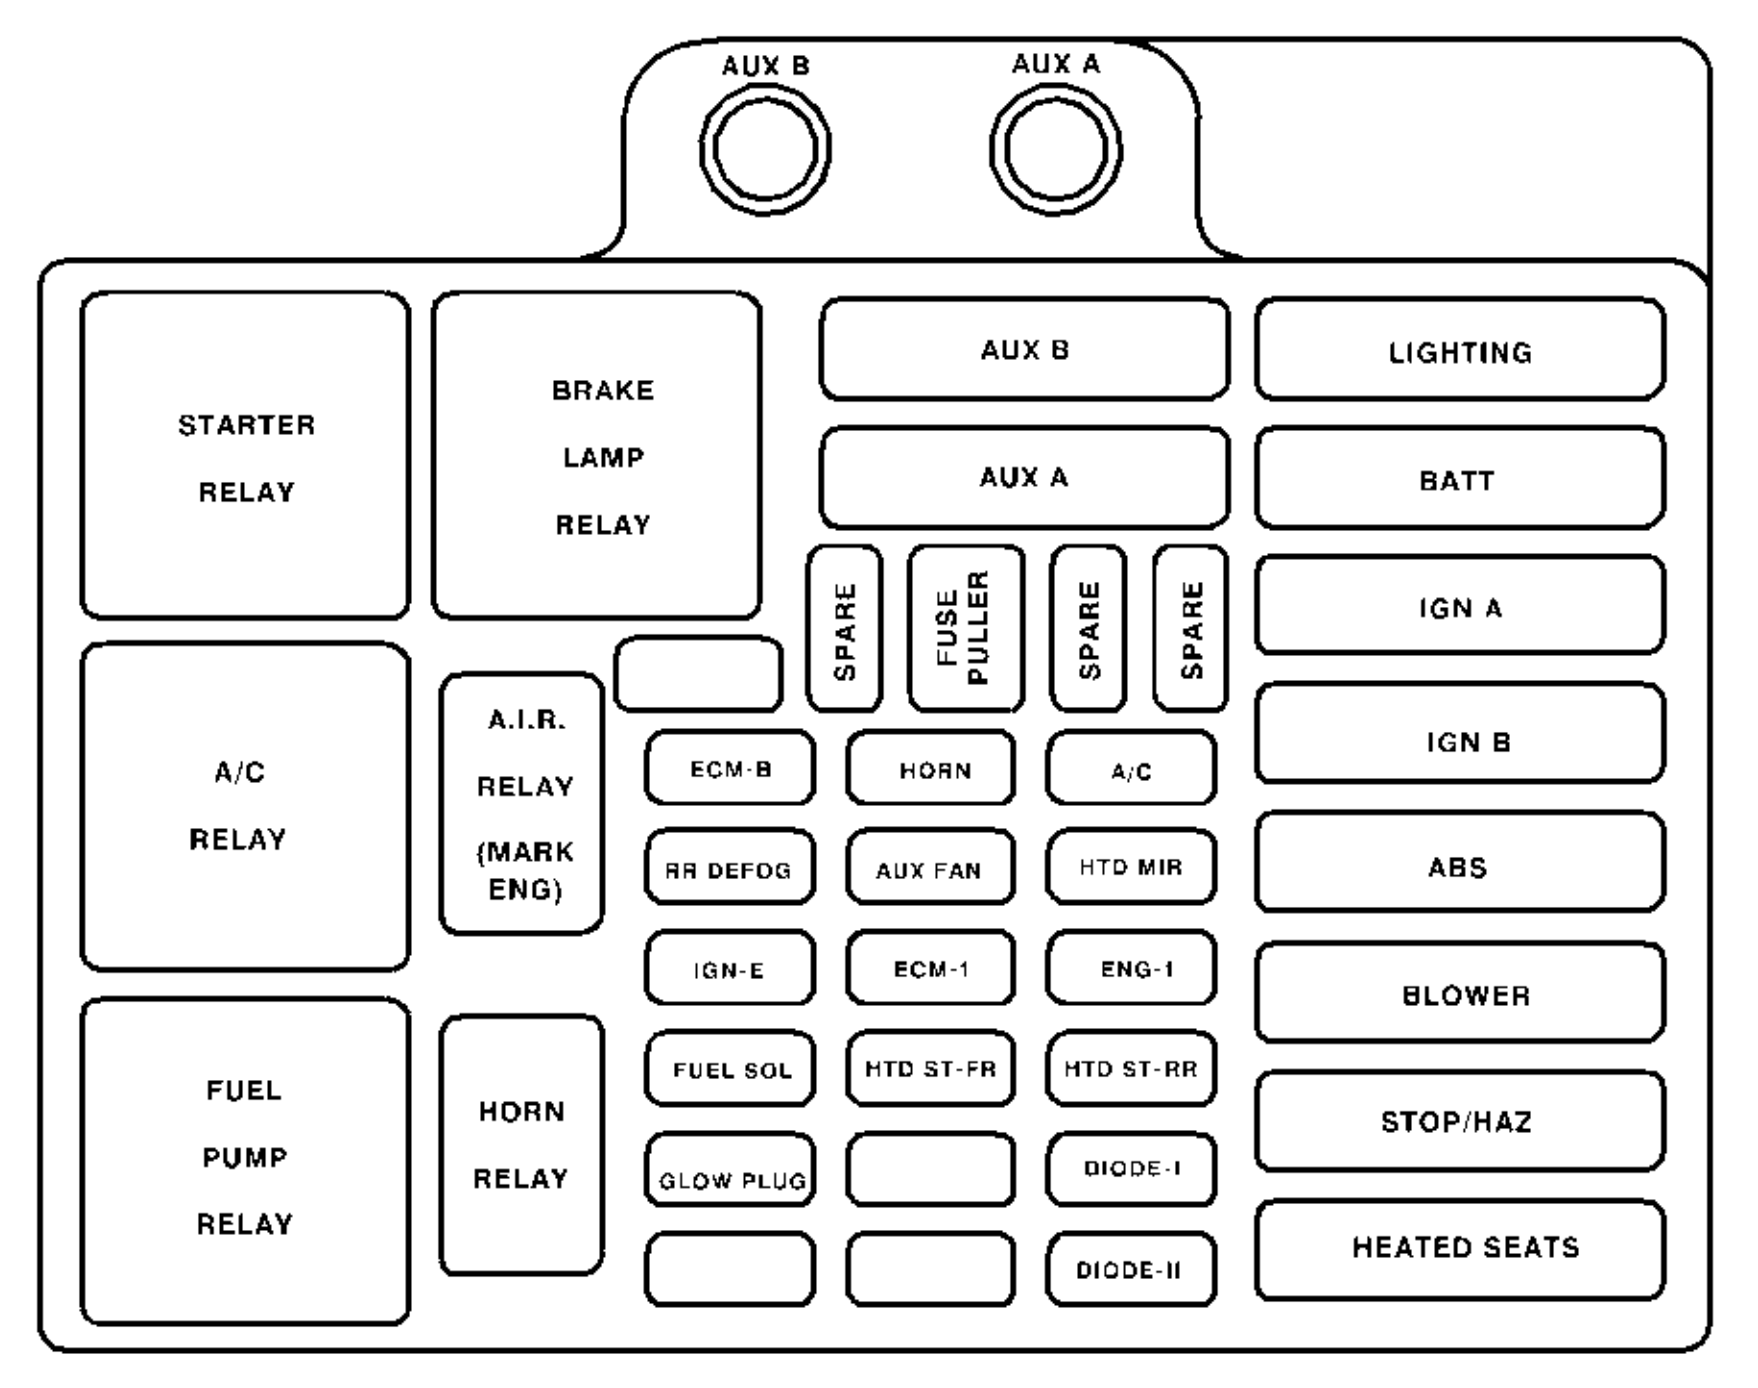 Toyota Rav4 Fuse Box Location